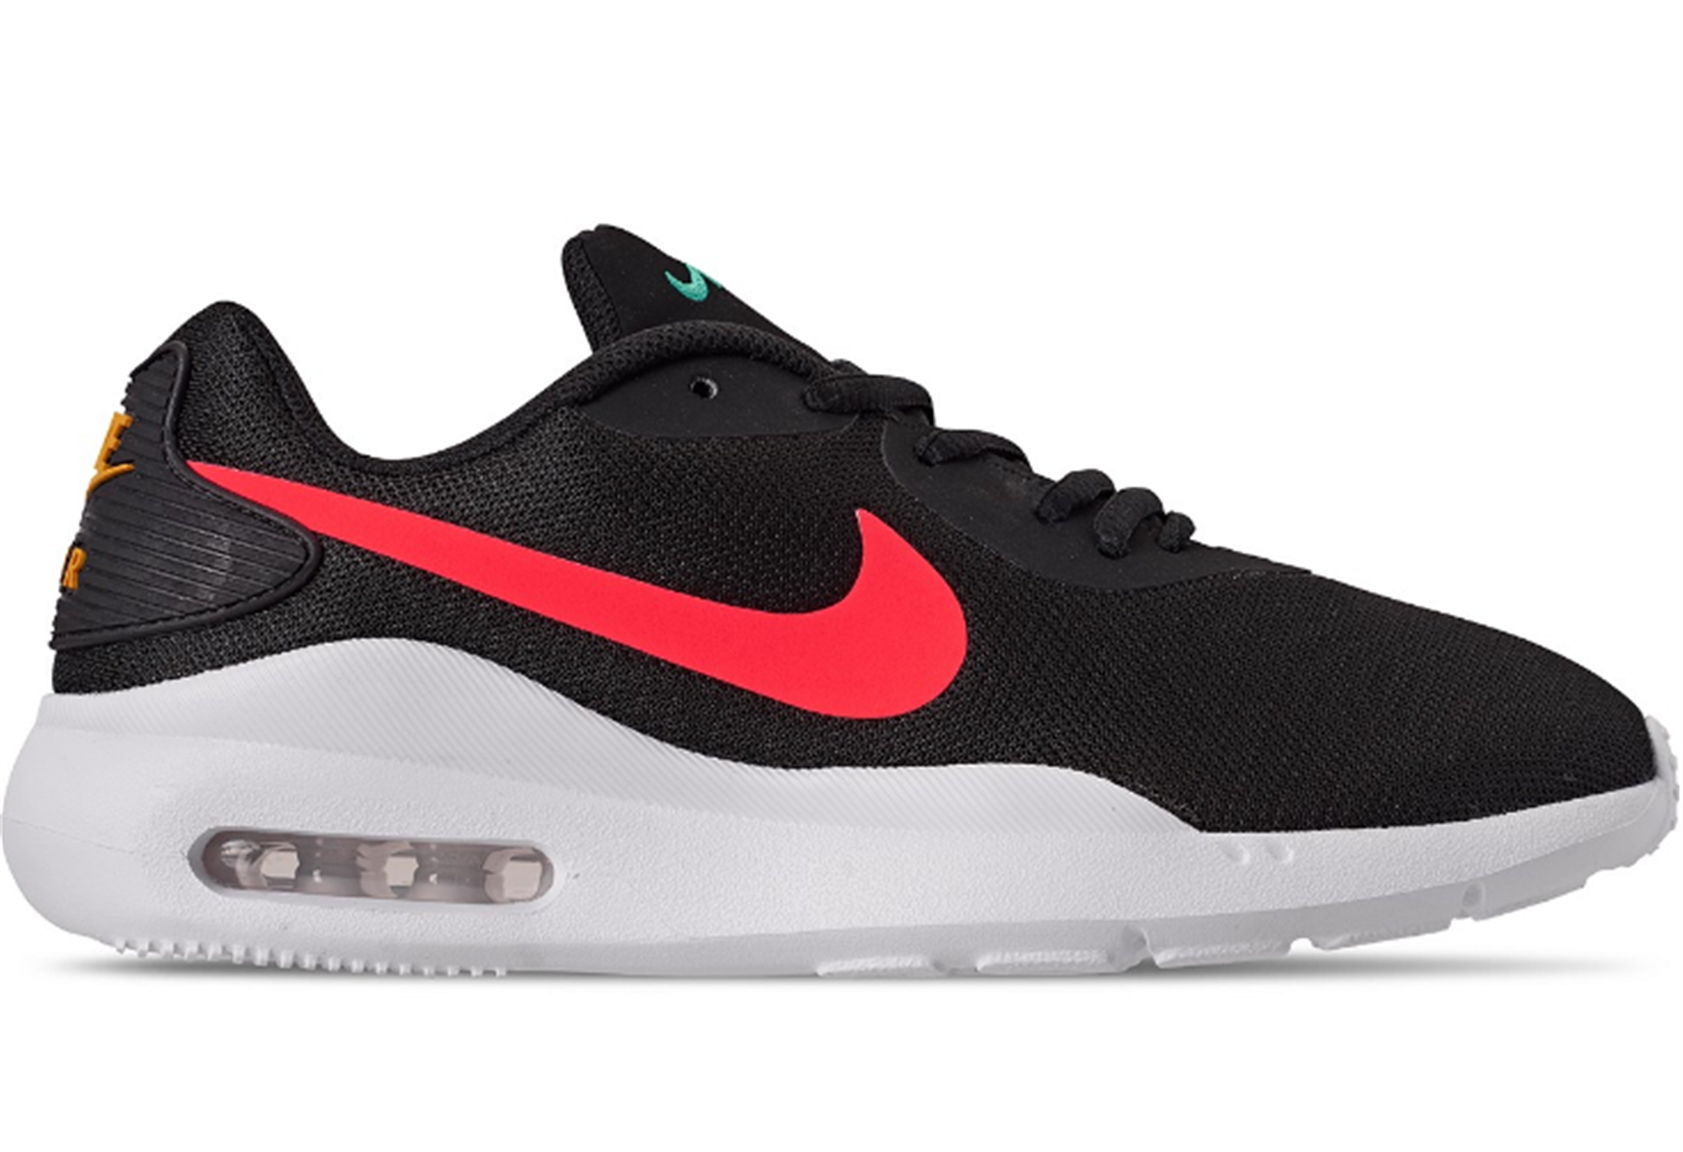 Nike Men's Air Max Oketo Casual Sneakers Only $30.00, Reg $75.00 + Free Shipping!